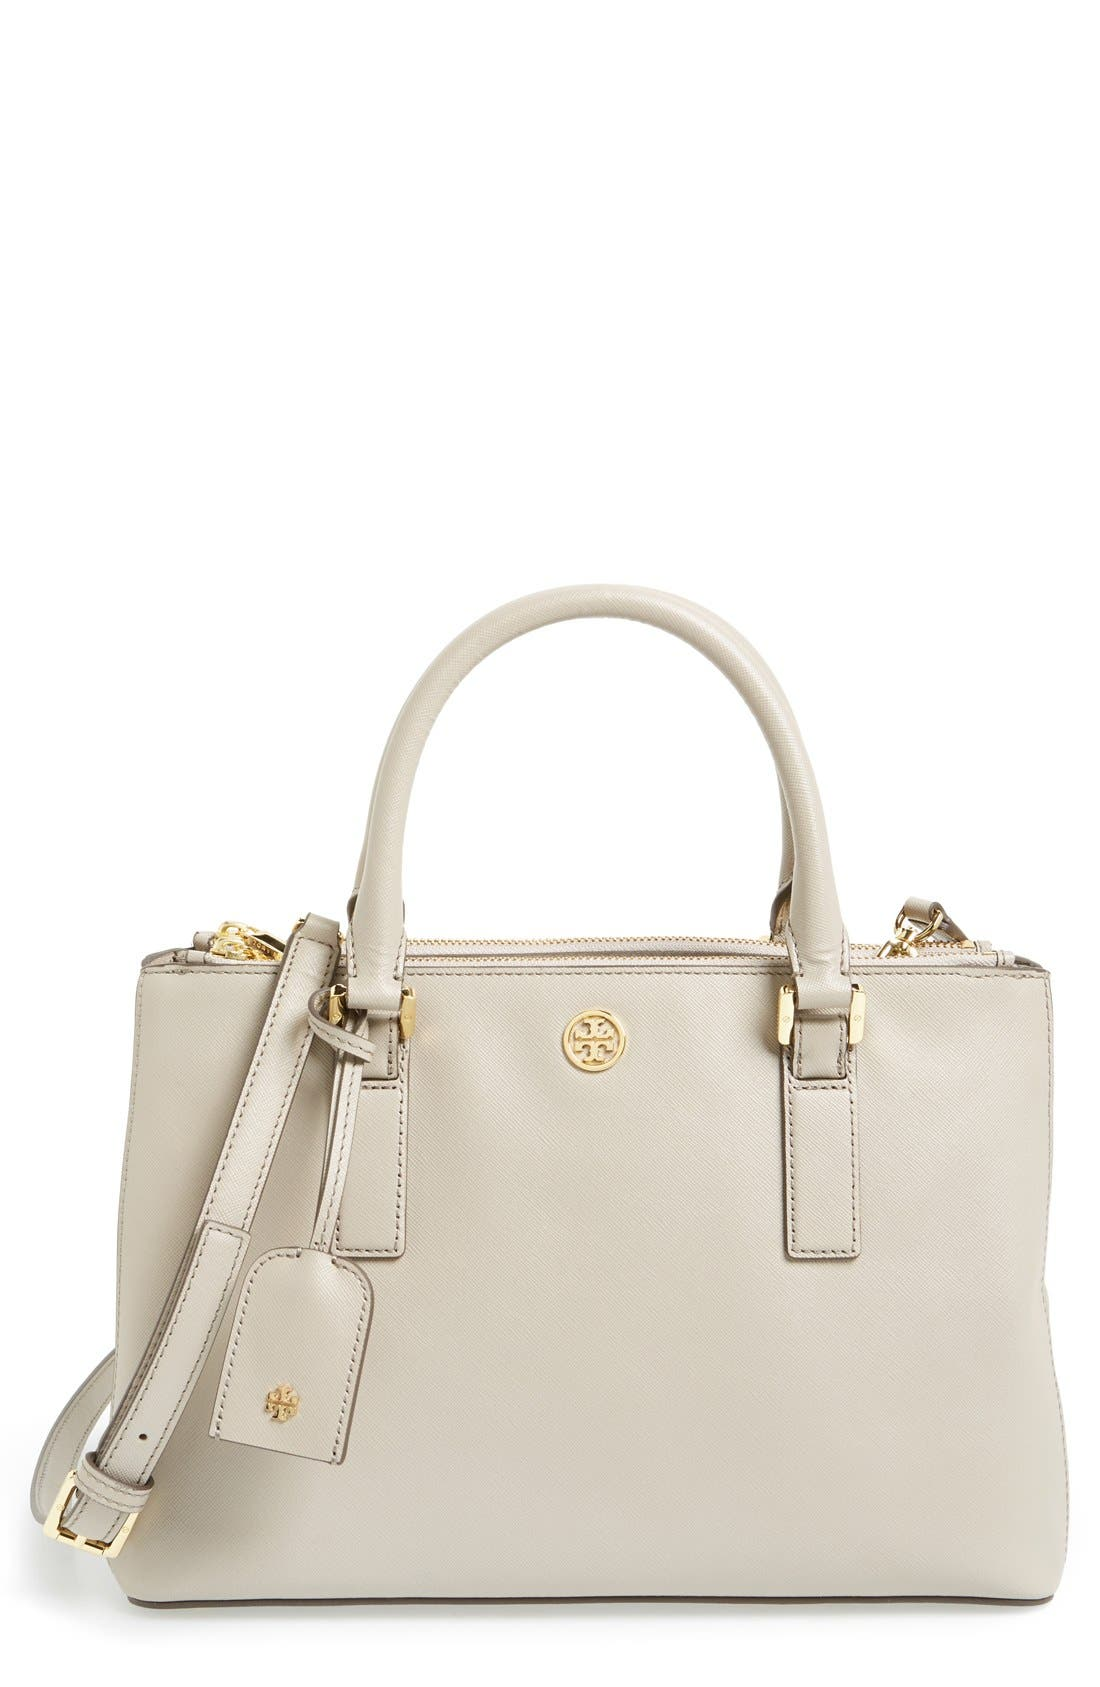 Main Image - Tory Burch 'Robinson - Mini' Double Zip Leather Tote